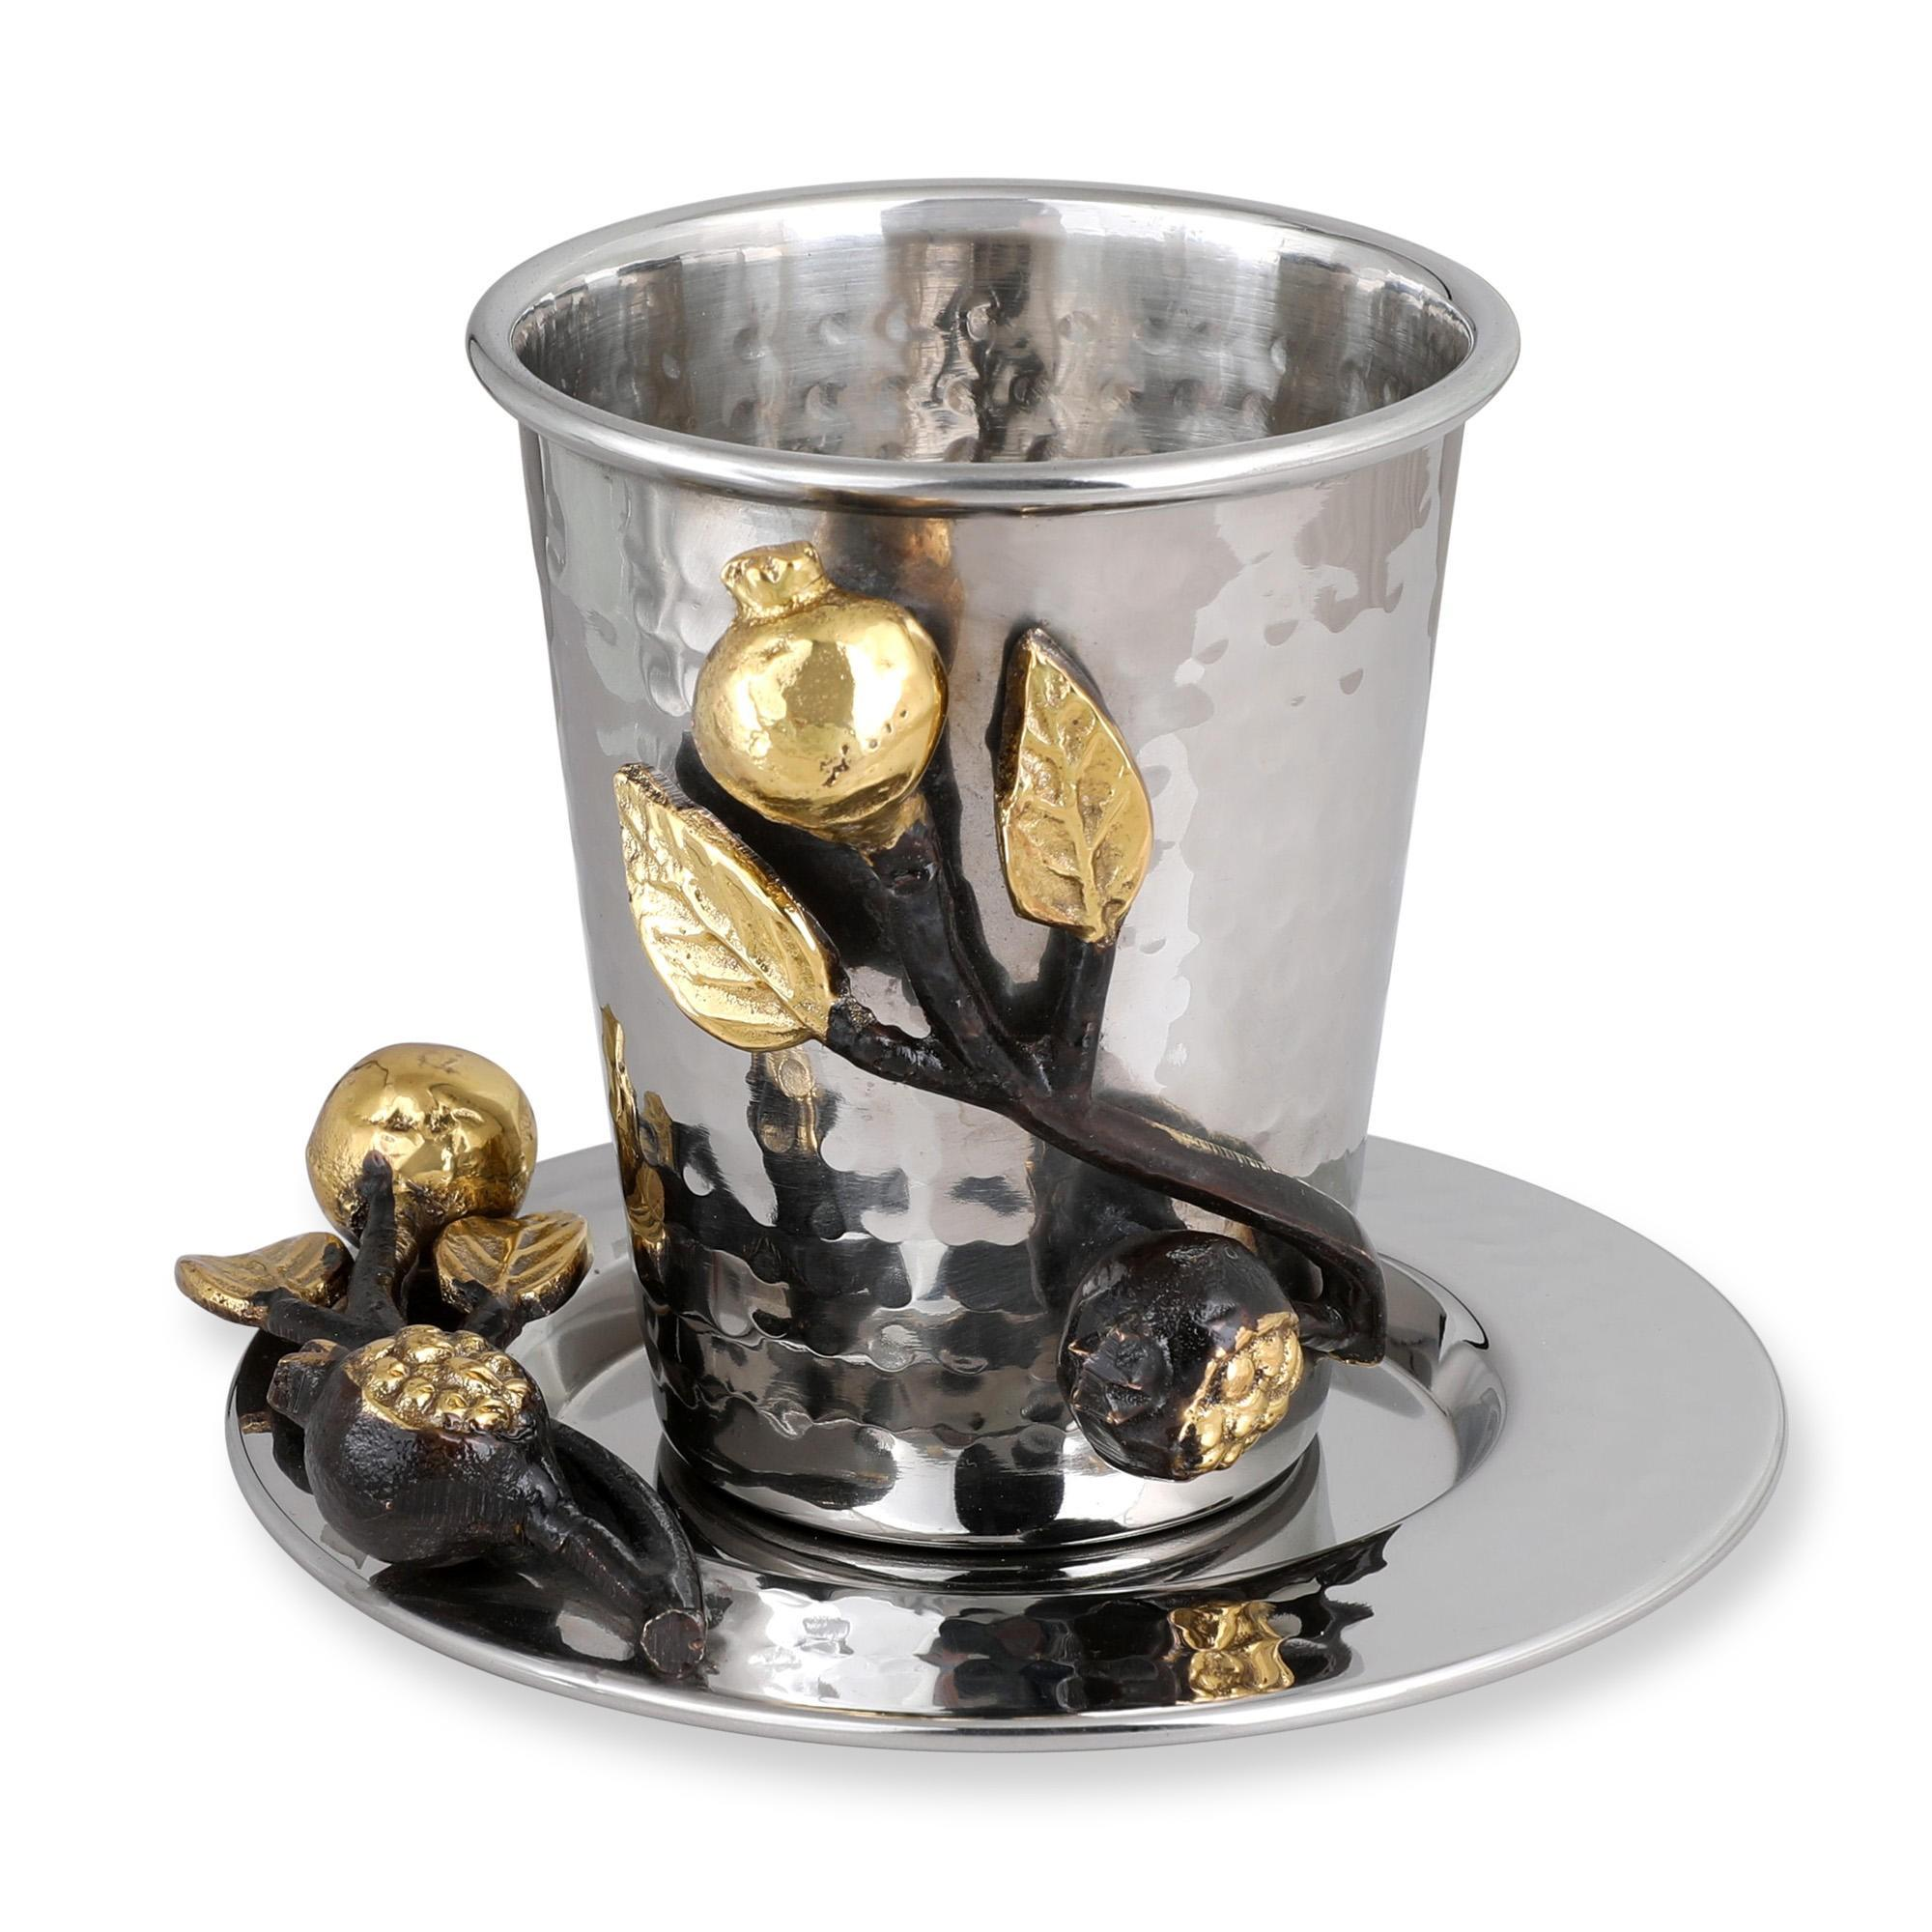 Pomegranate Kiddush Cup Stainless Steel